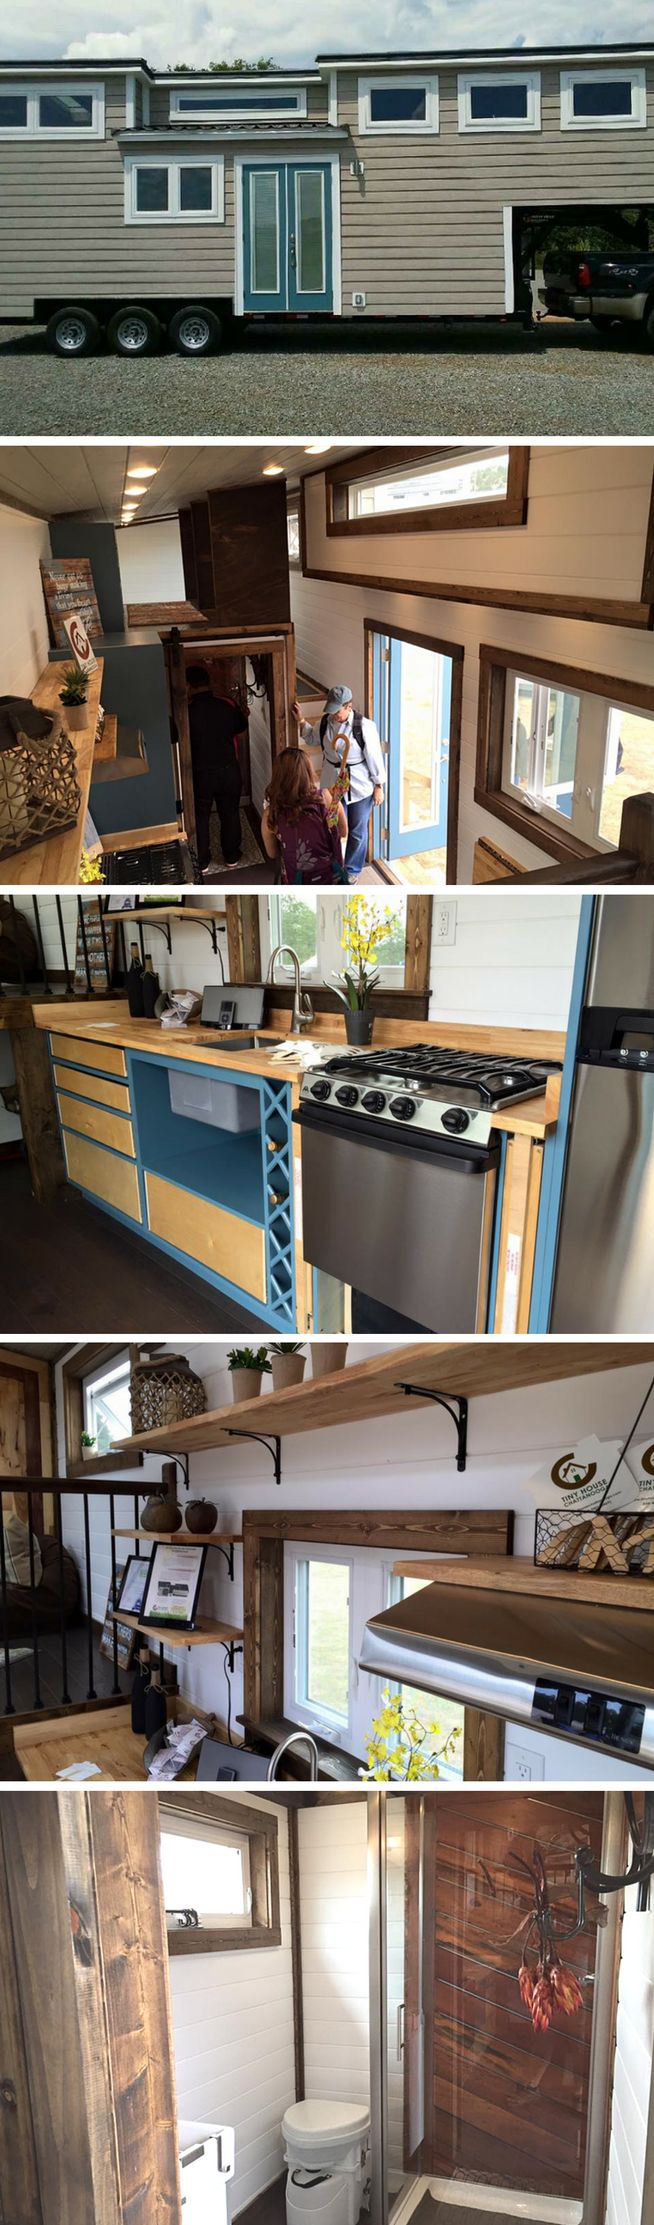 """The Lookout tiny house, by Tiny House Chattanooga. Voted """"Best in Show"""" at the 2016 Tiny House Jamboree!"""